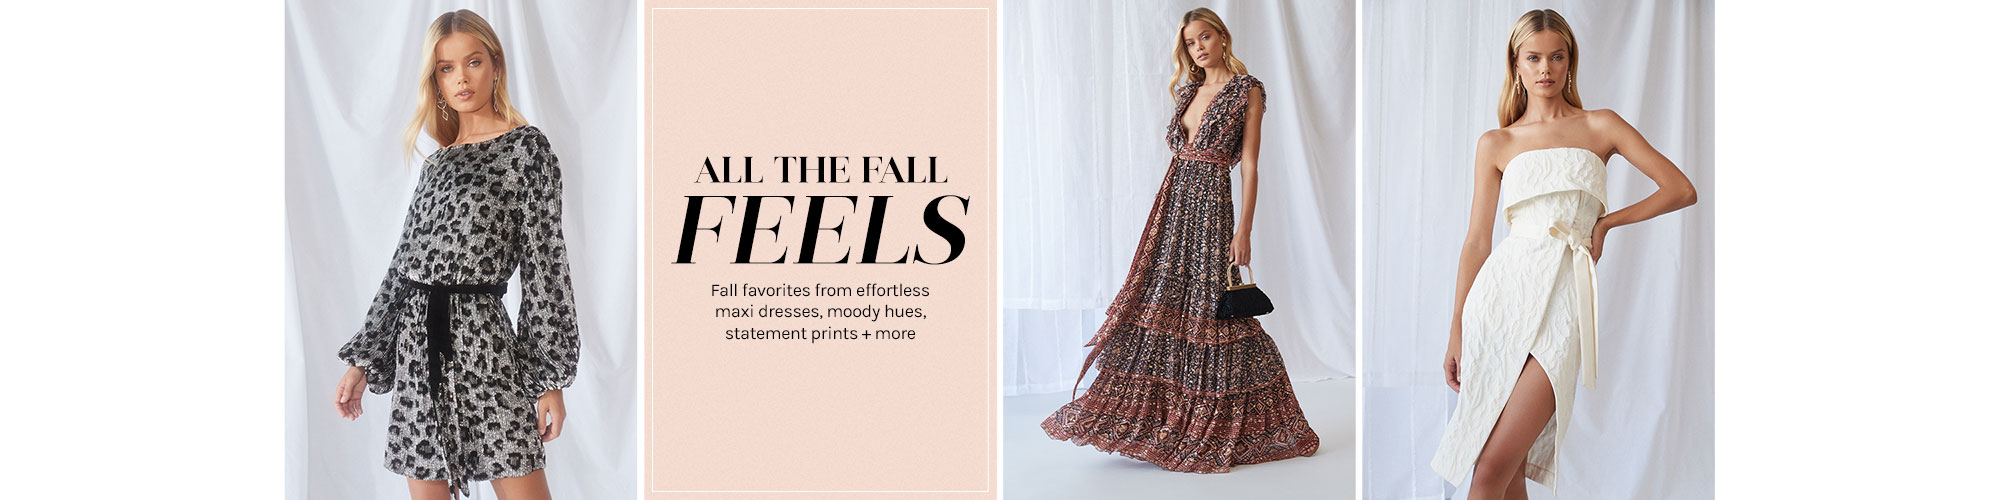 All the Fall Feels. all favorites from effortless maxi dresses to moody hues + statement prints.